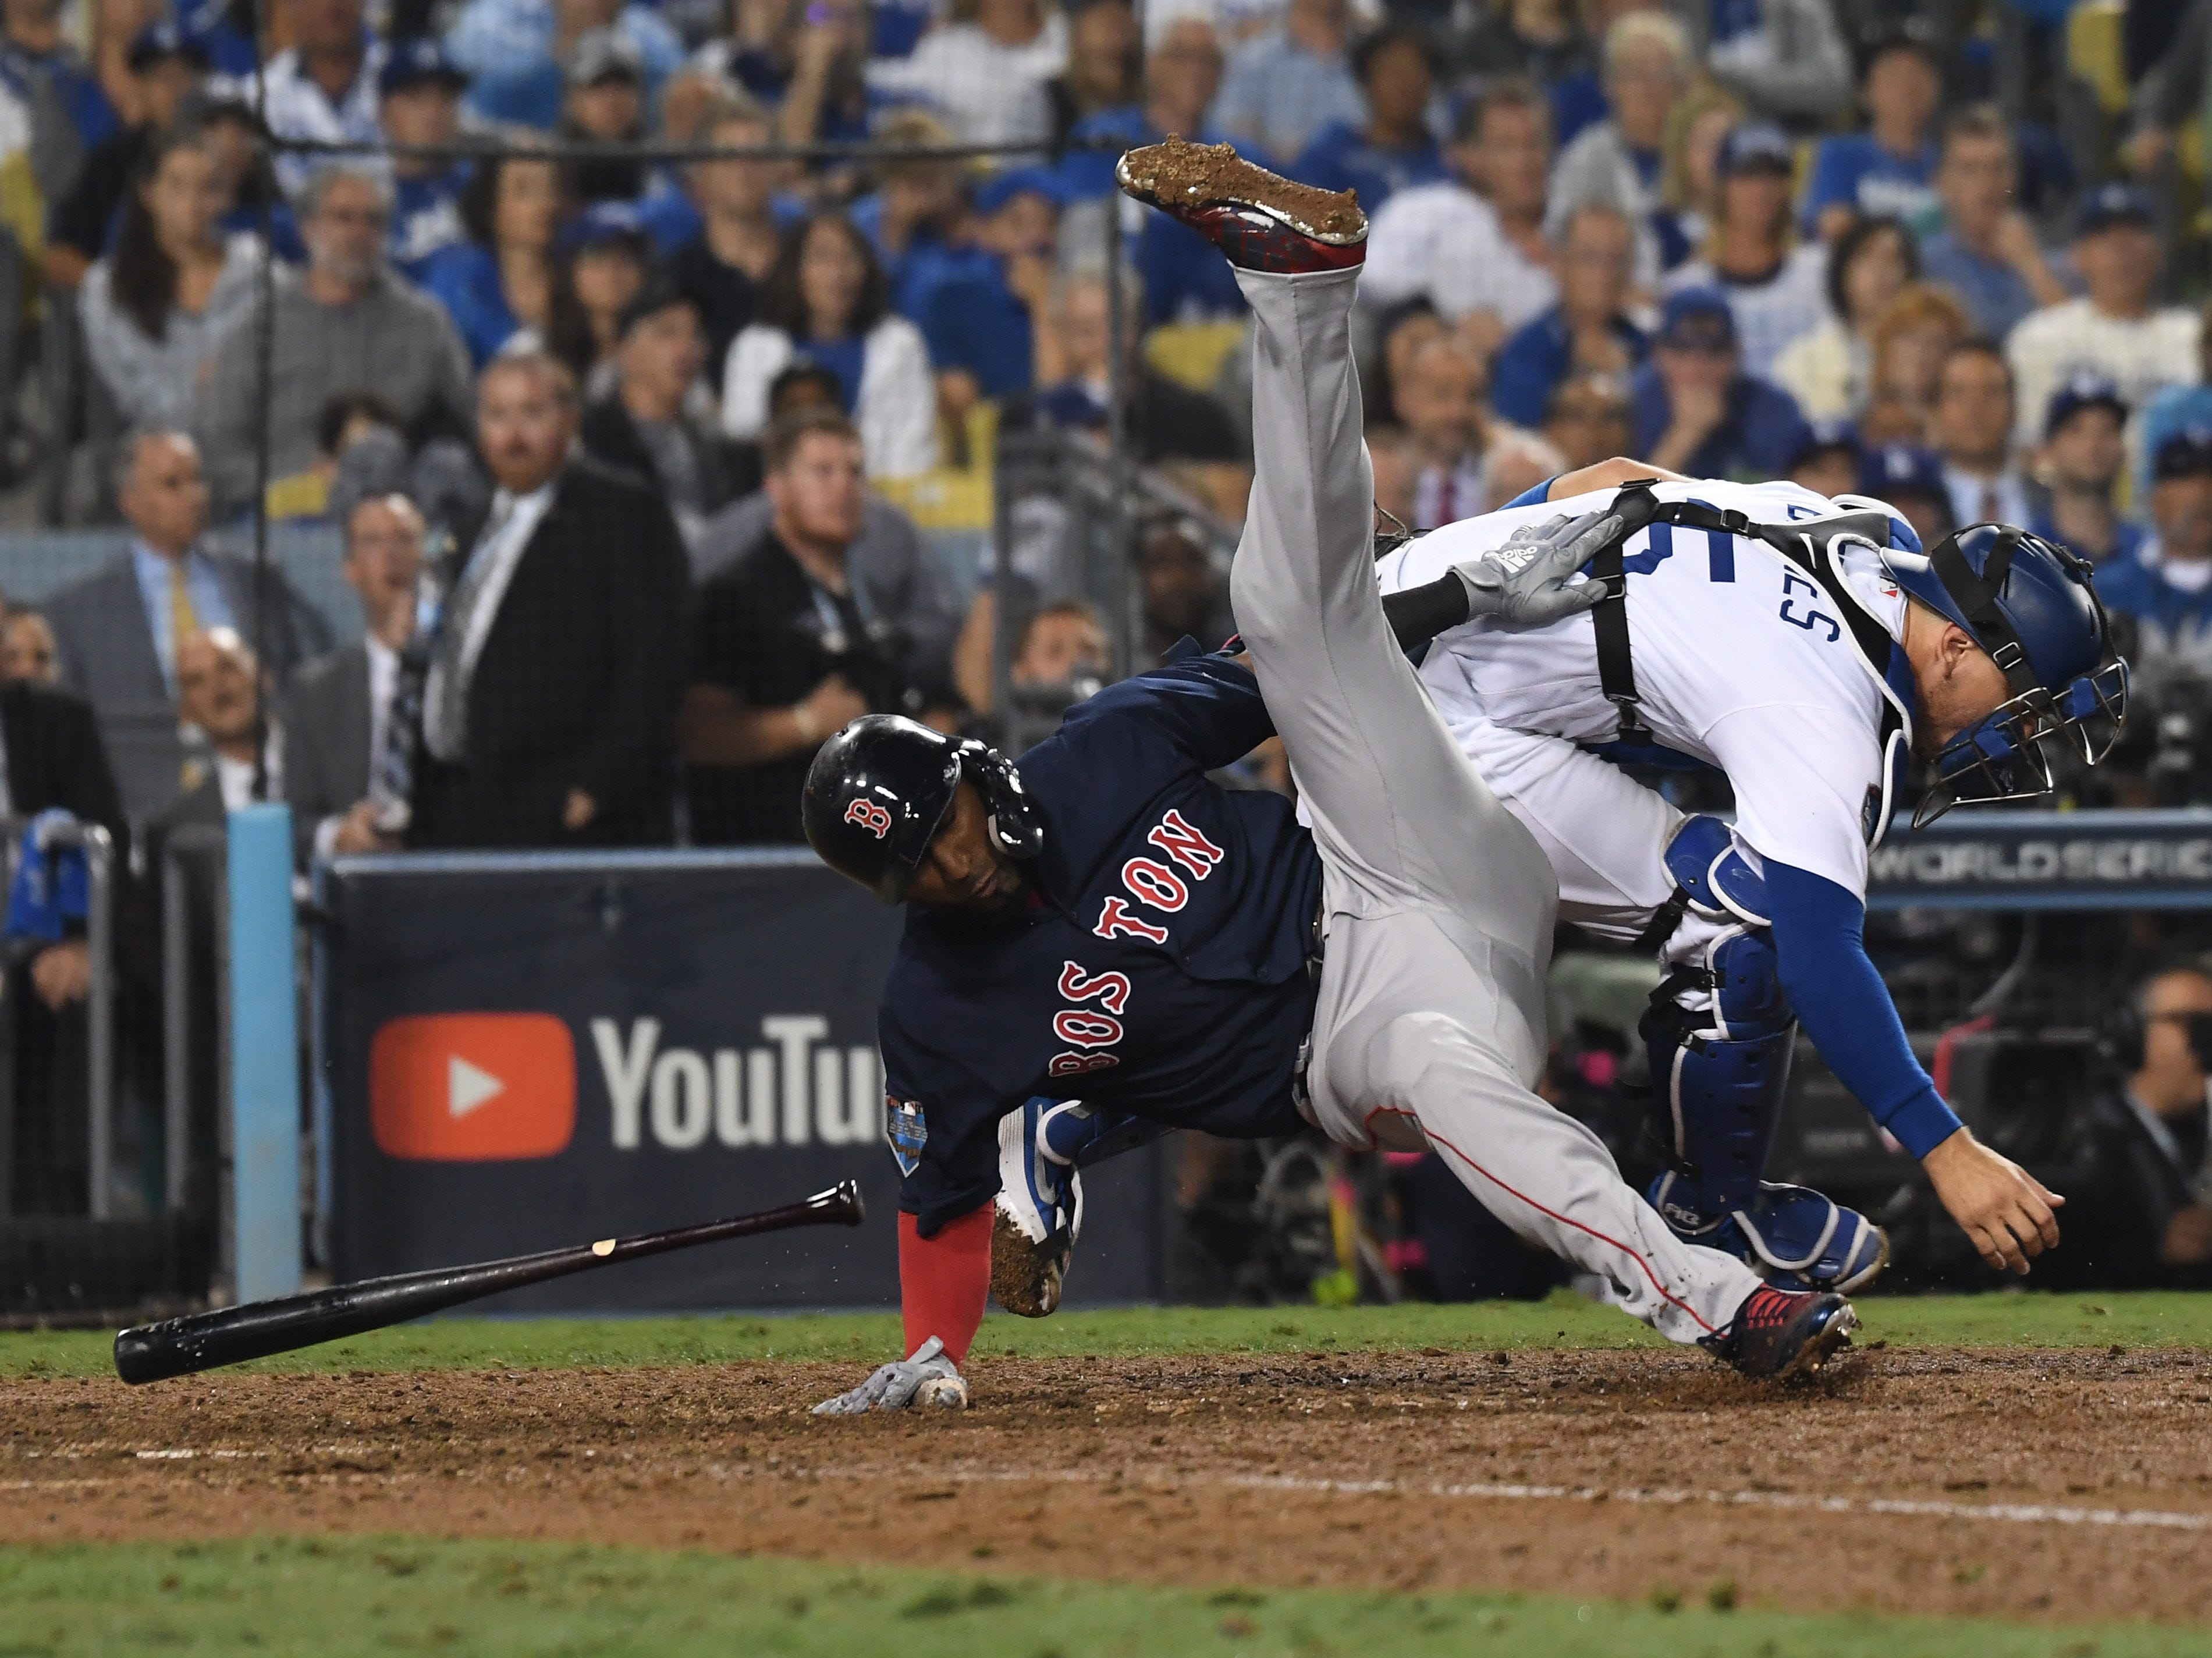 Game 3 at Dodger Stadium: Eduardo Nunez falls over as Austin Barnes goes after a ball in the dirt in the 13th inning.